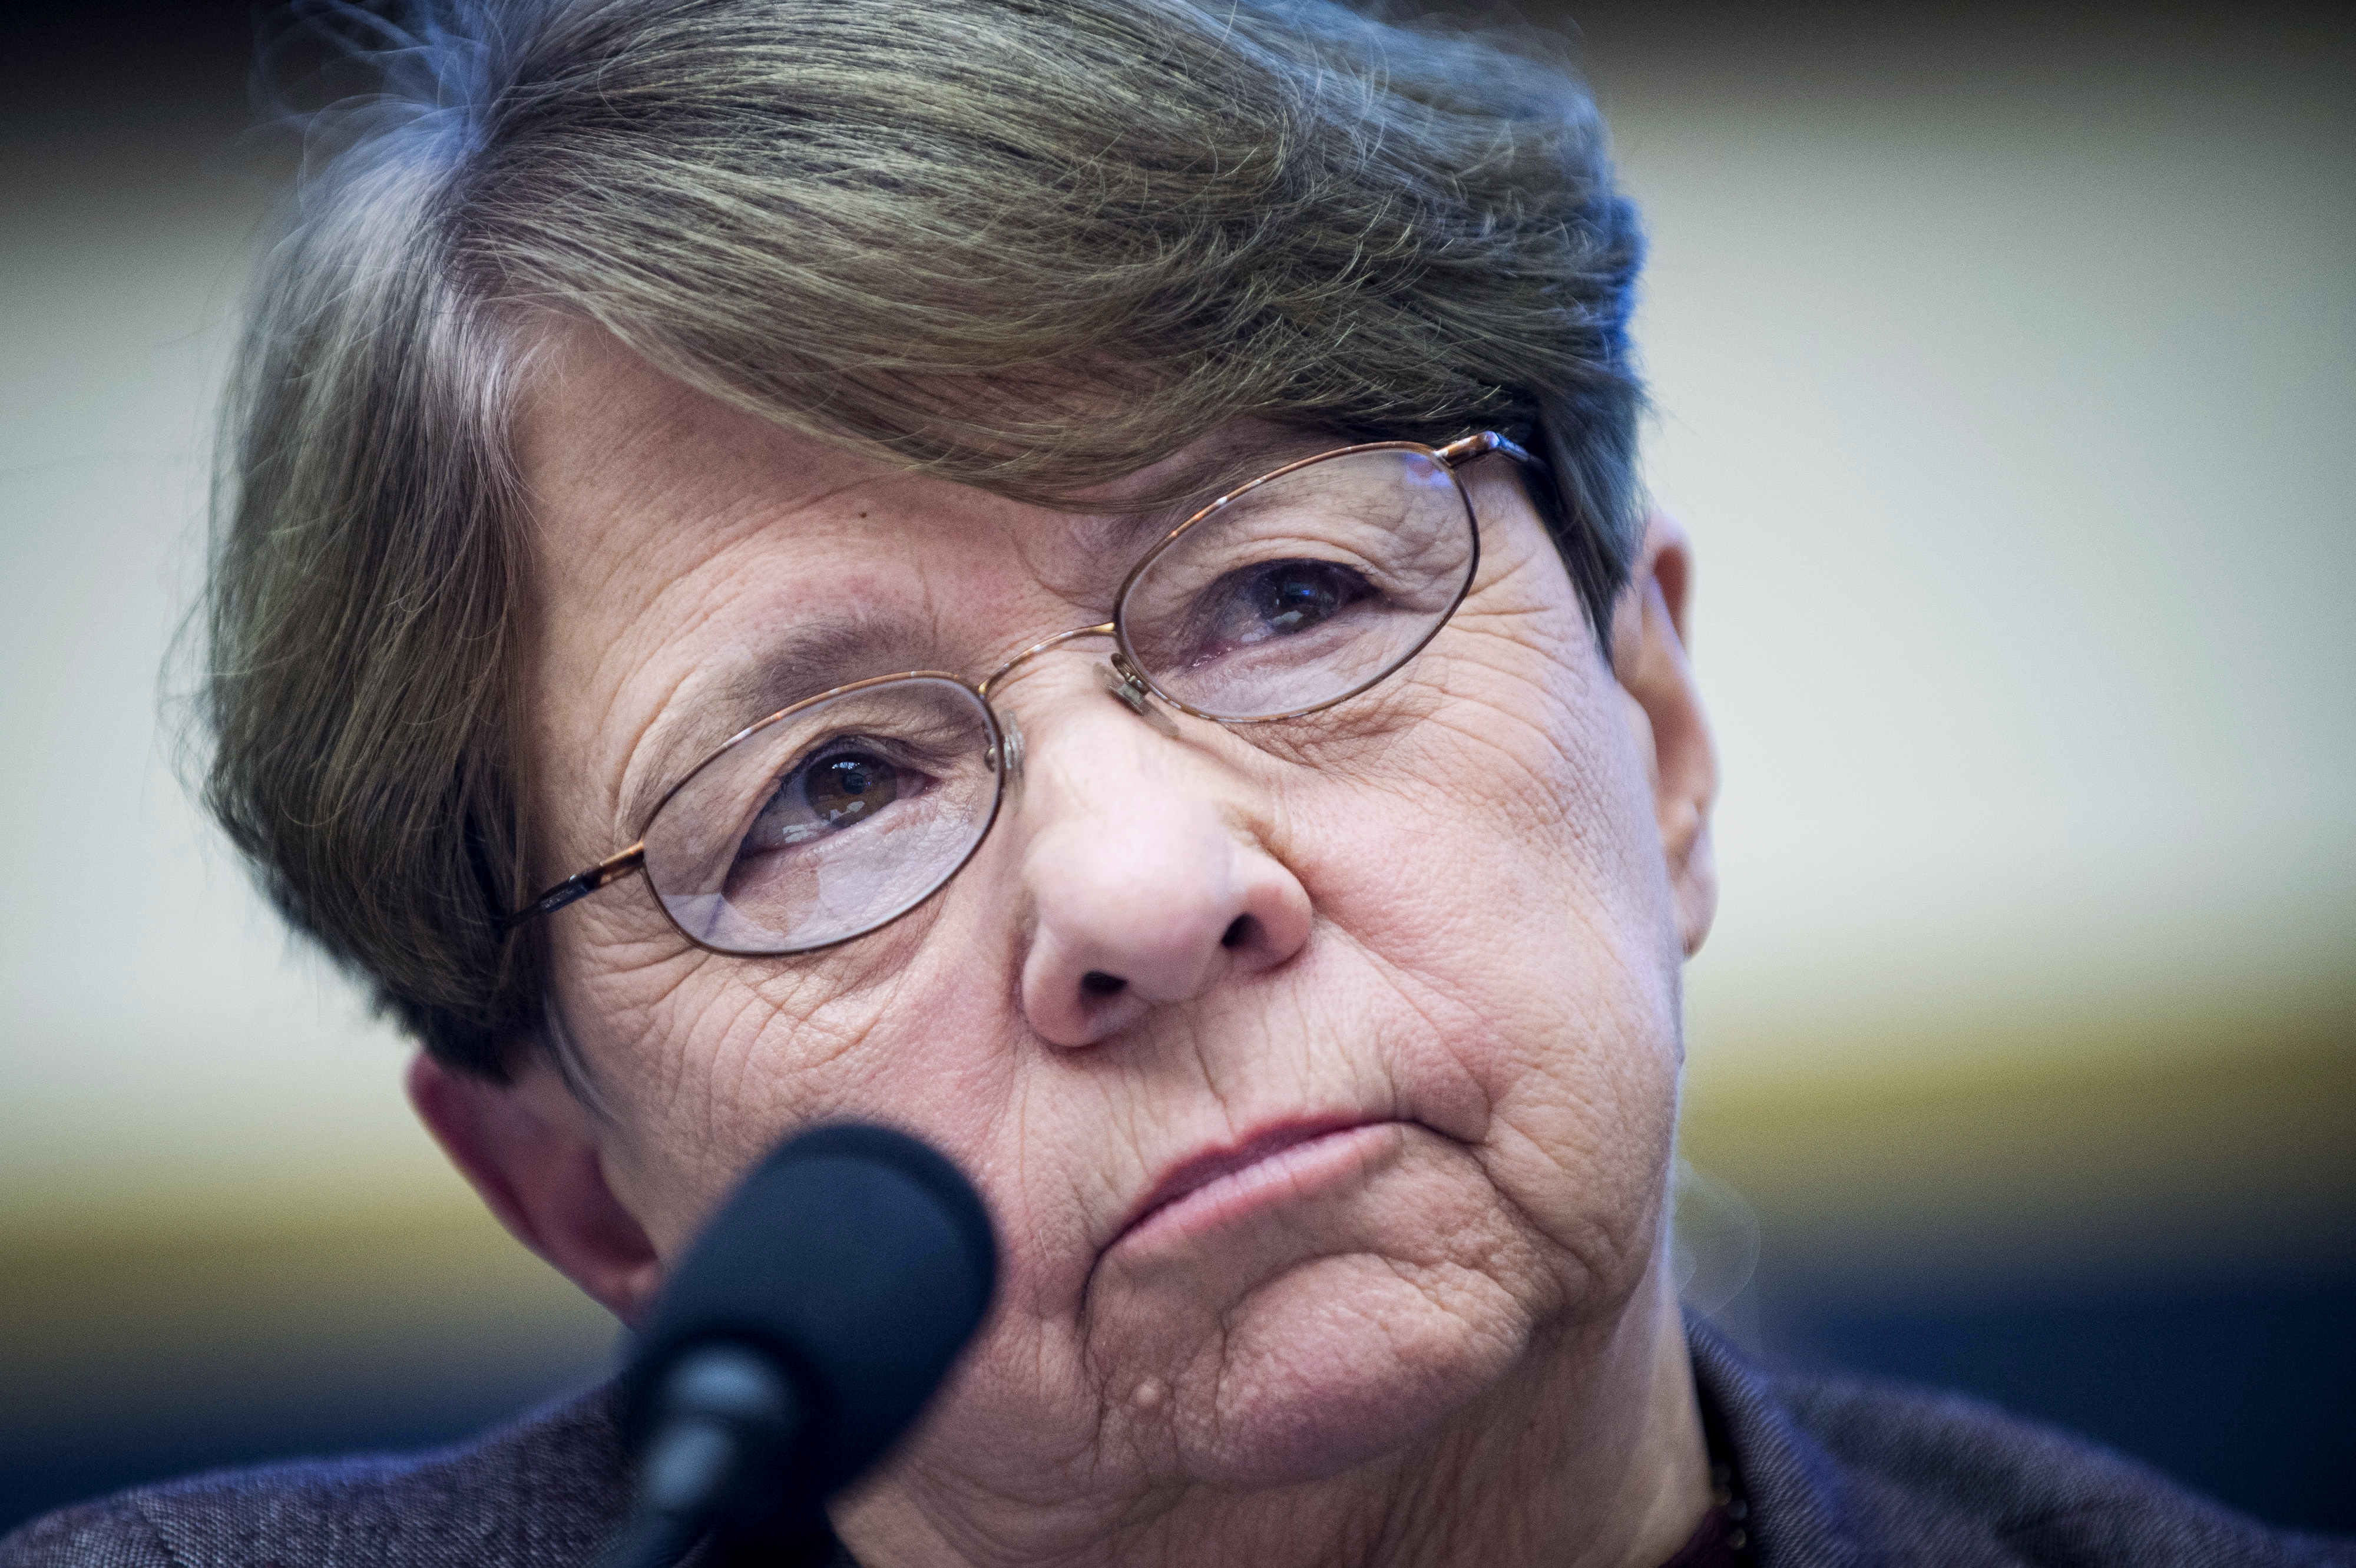 SEC Chairman Mary Jo White Testifies Before The House Financial Services Committee